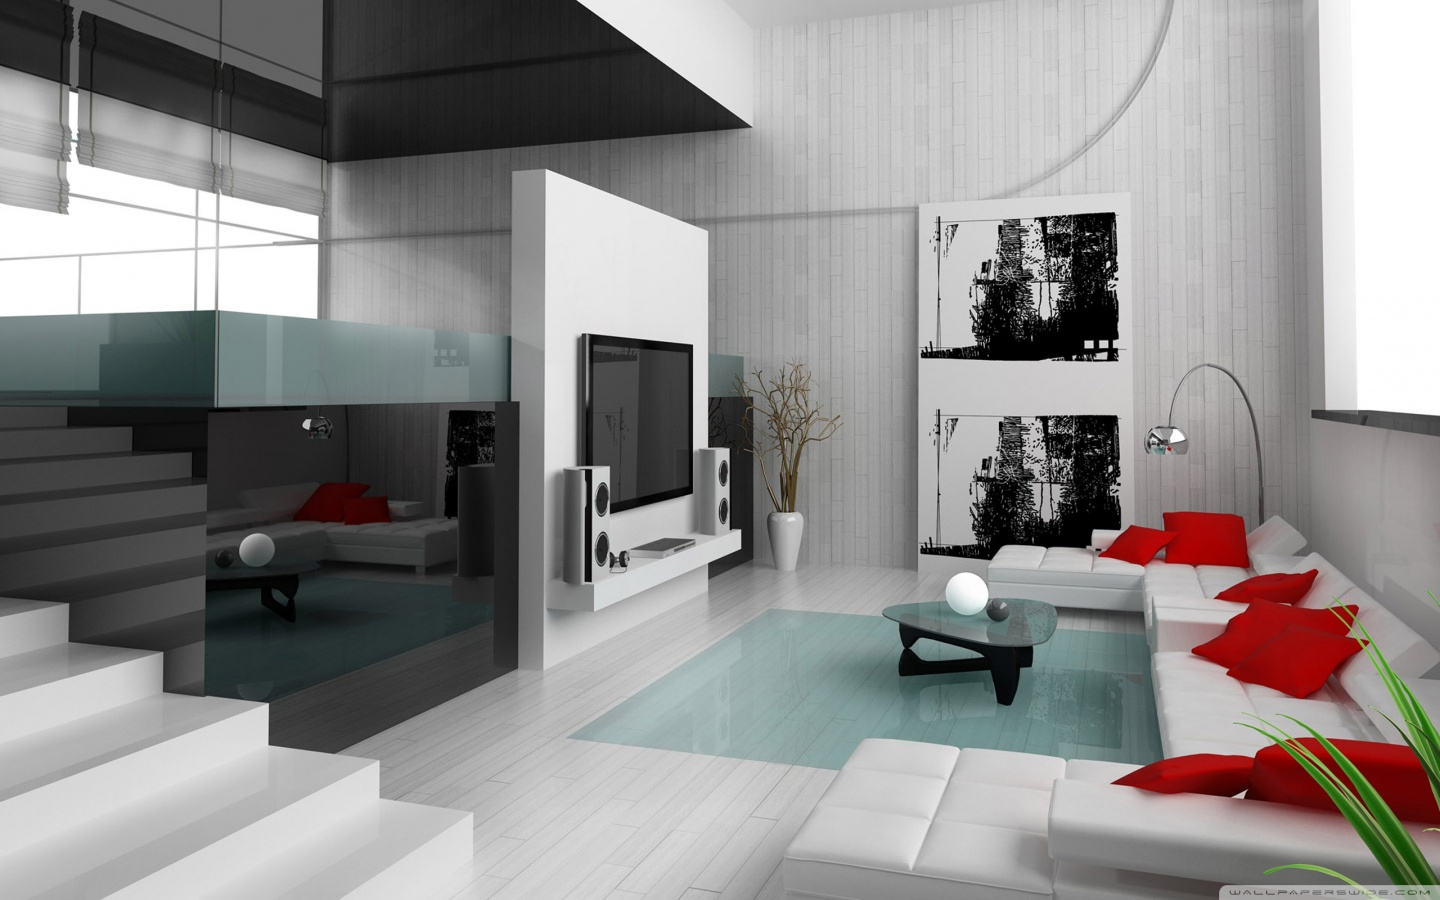 Minimalist interior design imagination art architecture for Minimalist house design